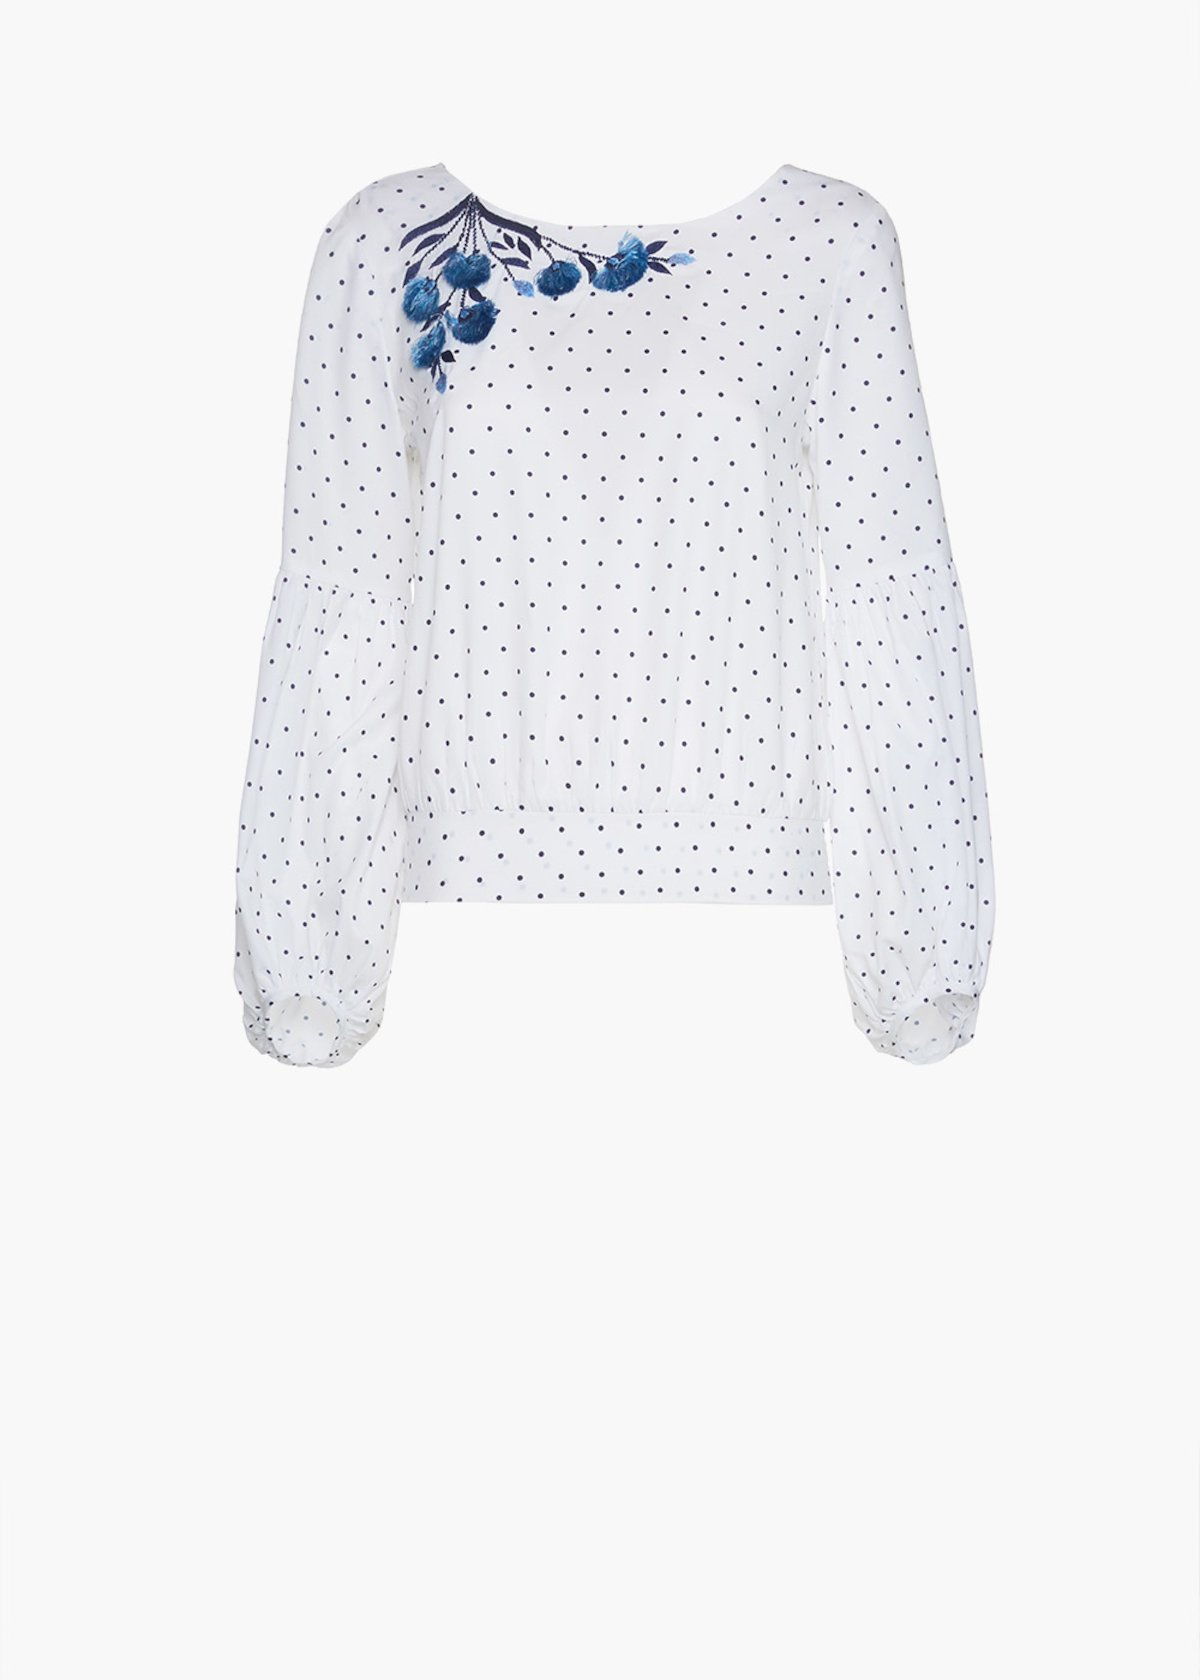 Cyprien blouse with polka dot print and boat neckline - White / Medium Blue - Woman - Category image